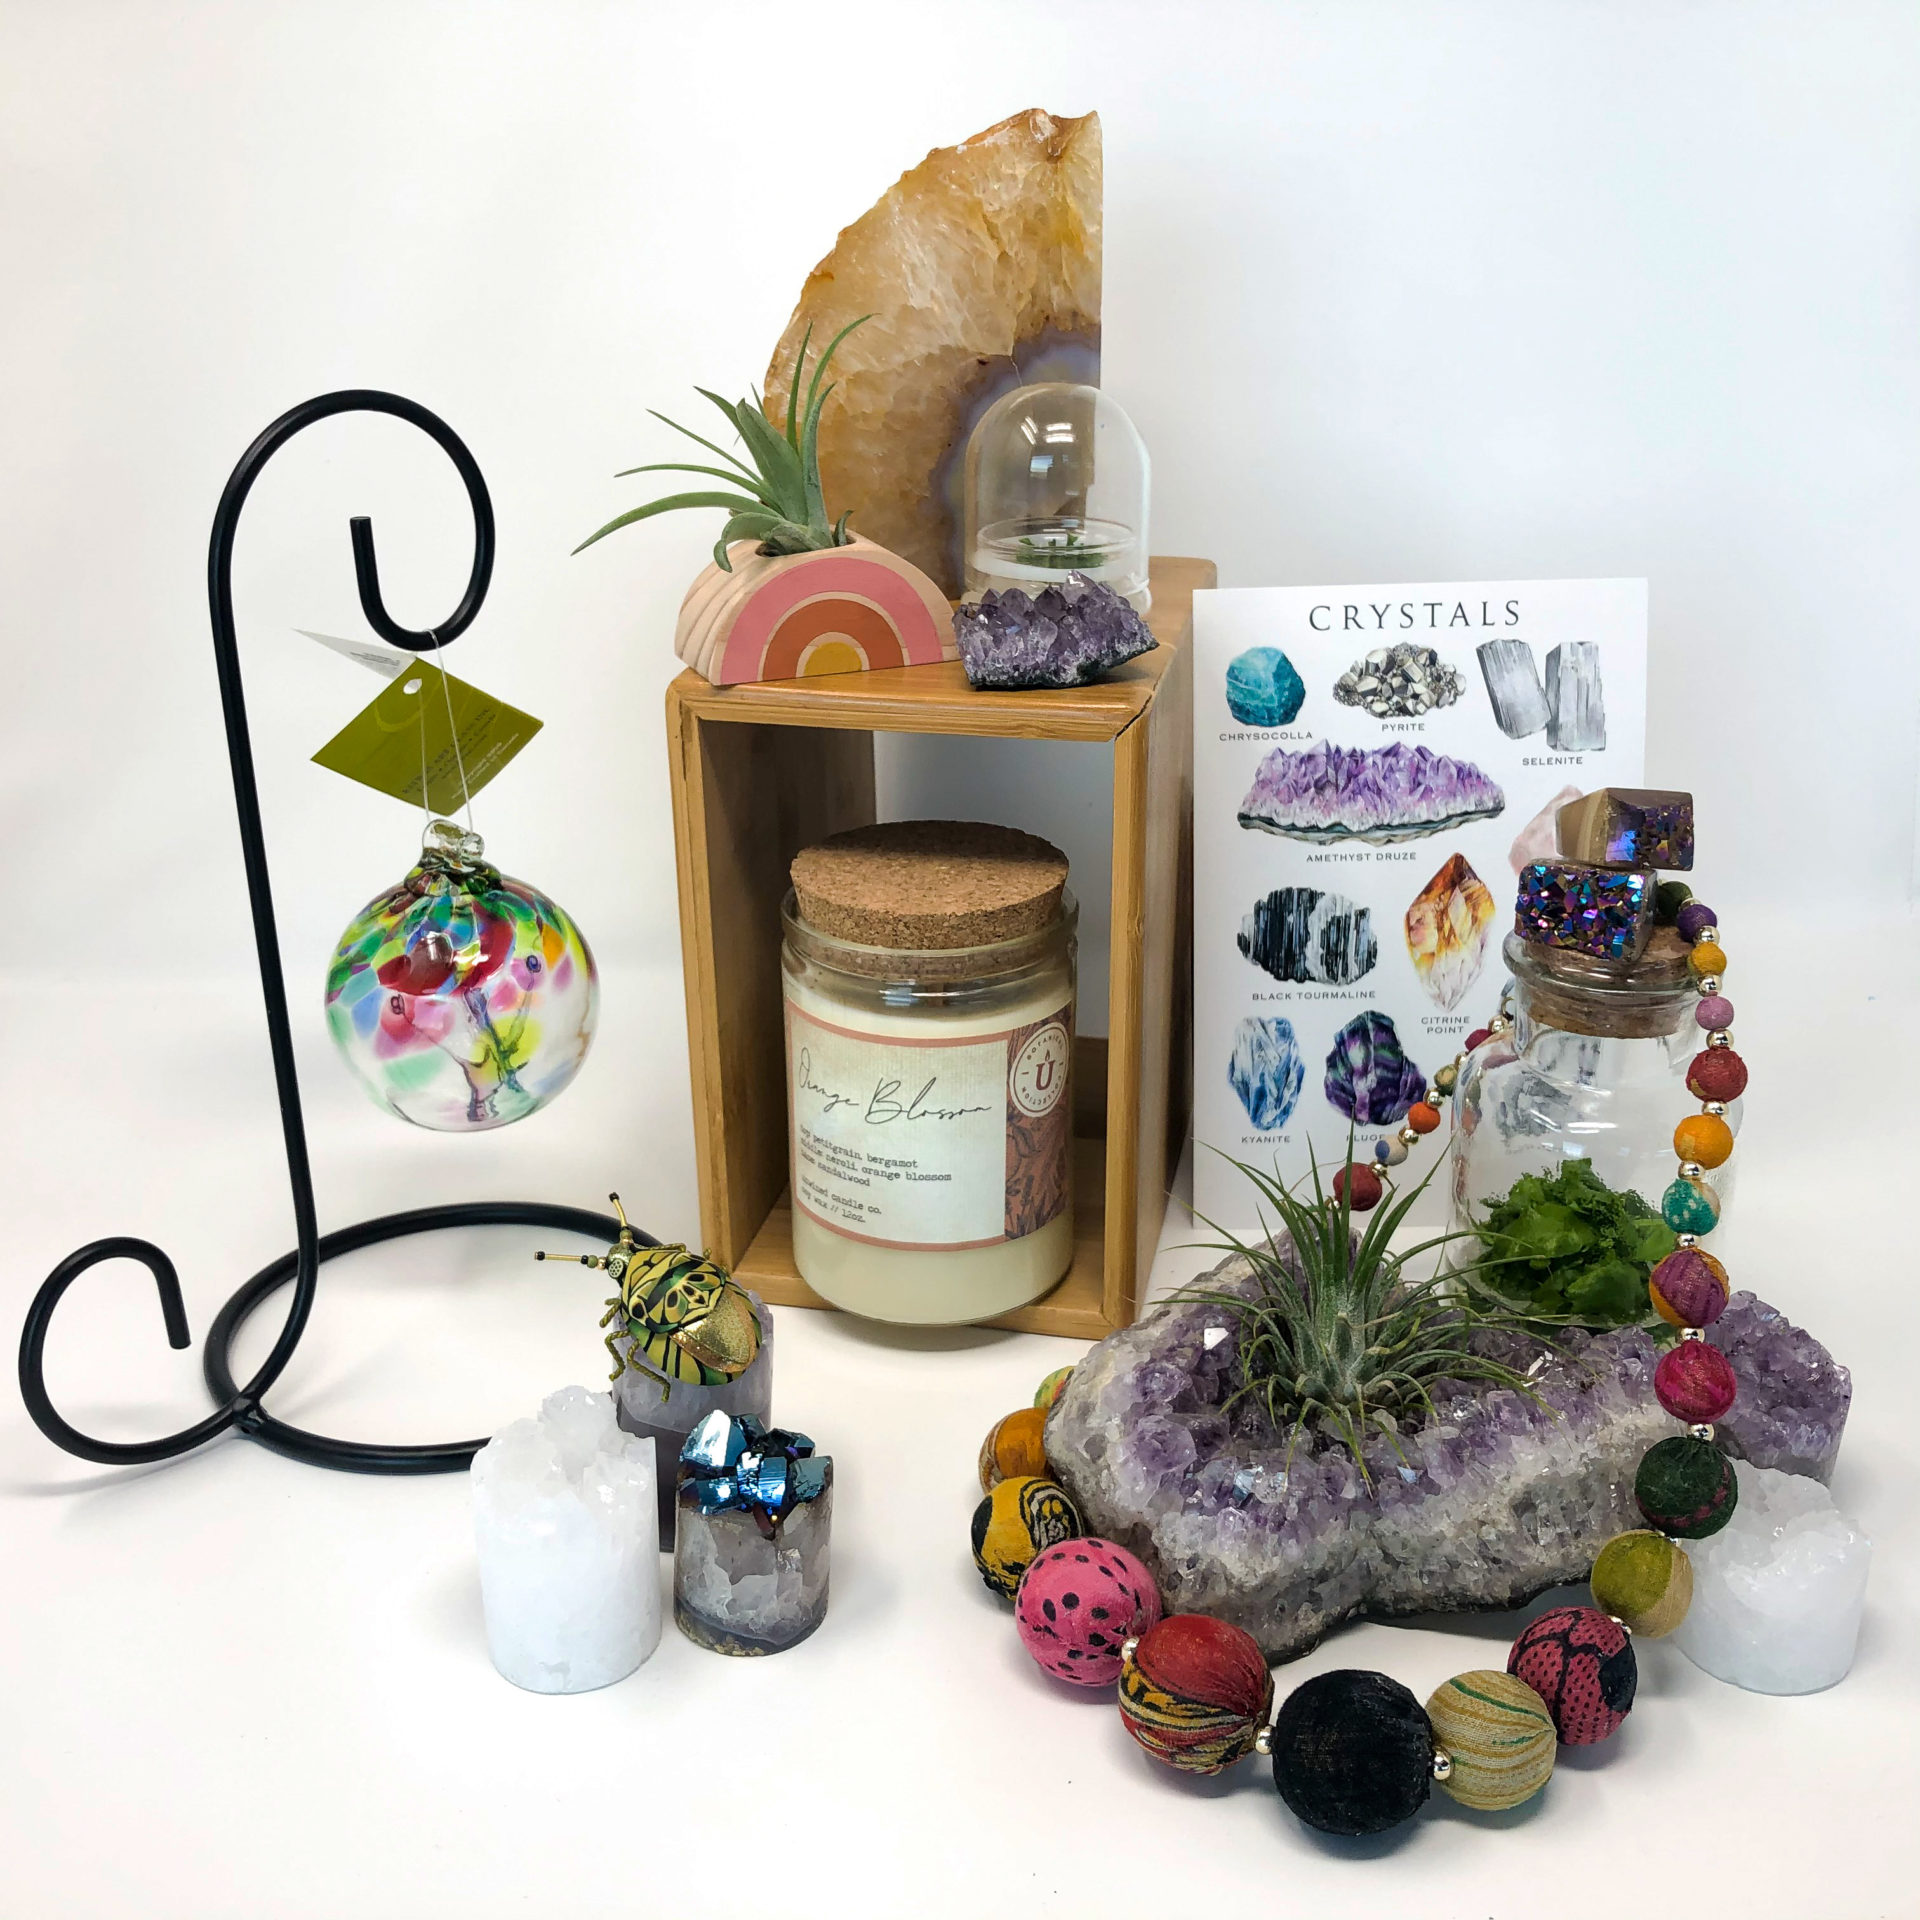 A selection of sparkly gifts